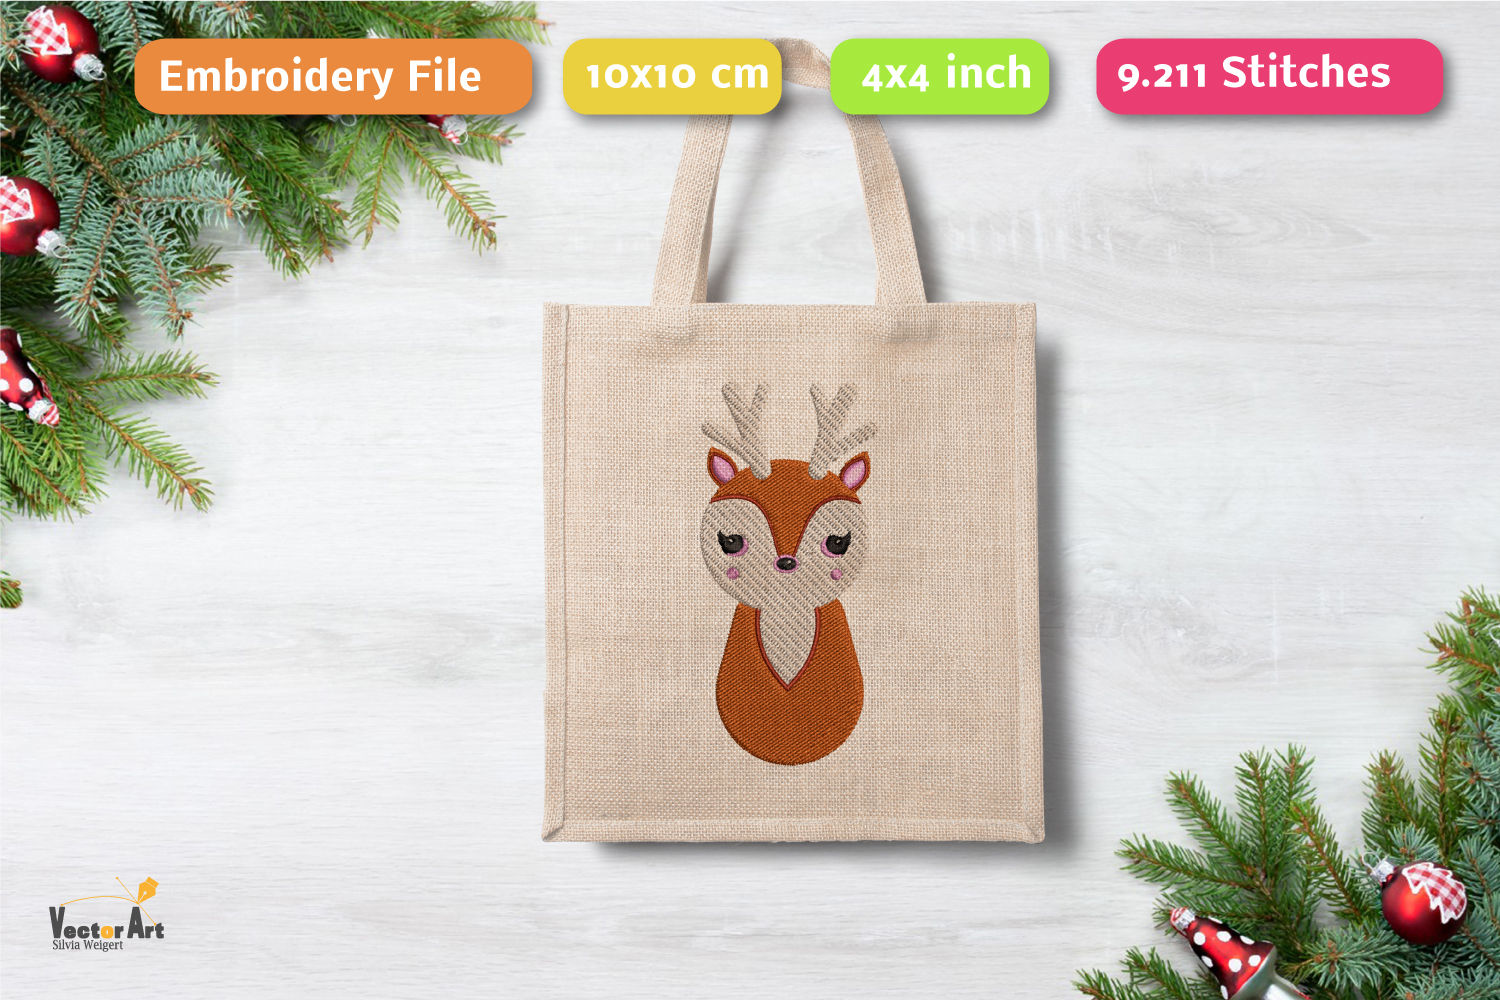 Christmas Mini Bundle - 3 Embroidery Files - 4x4 inch example image 3